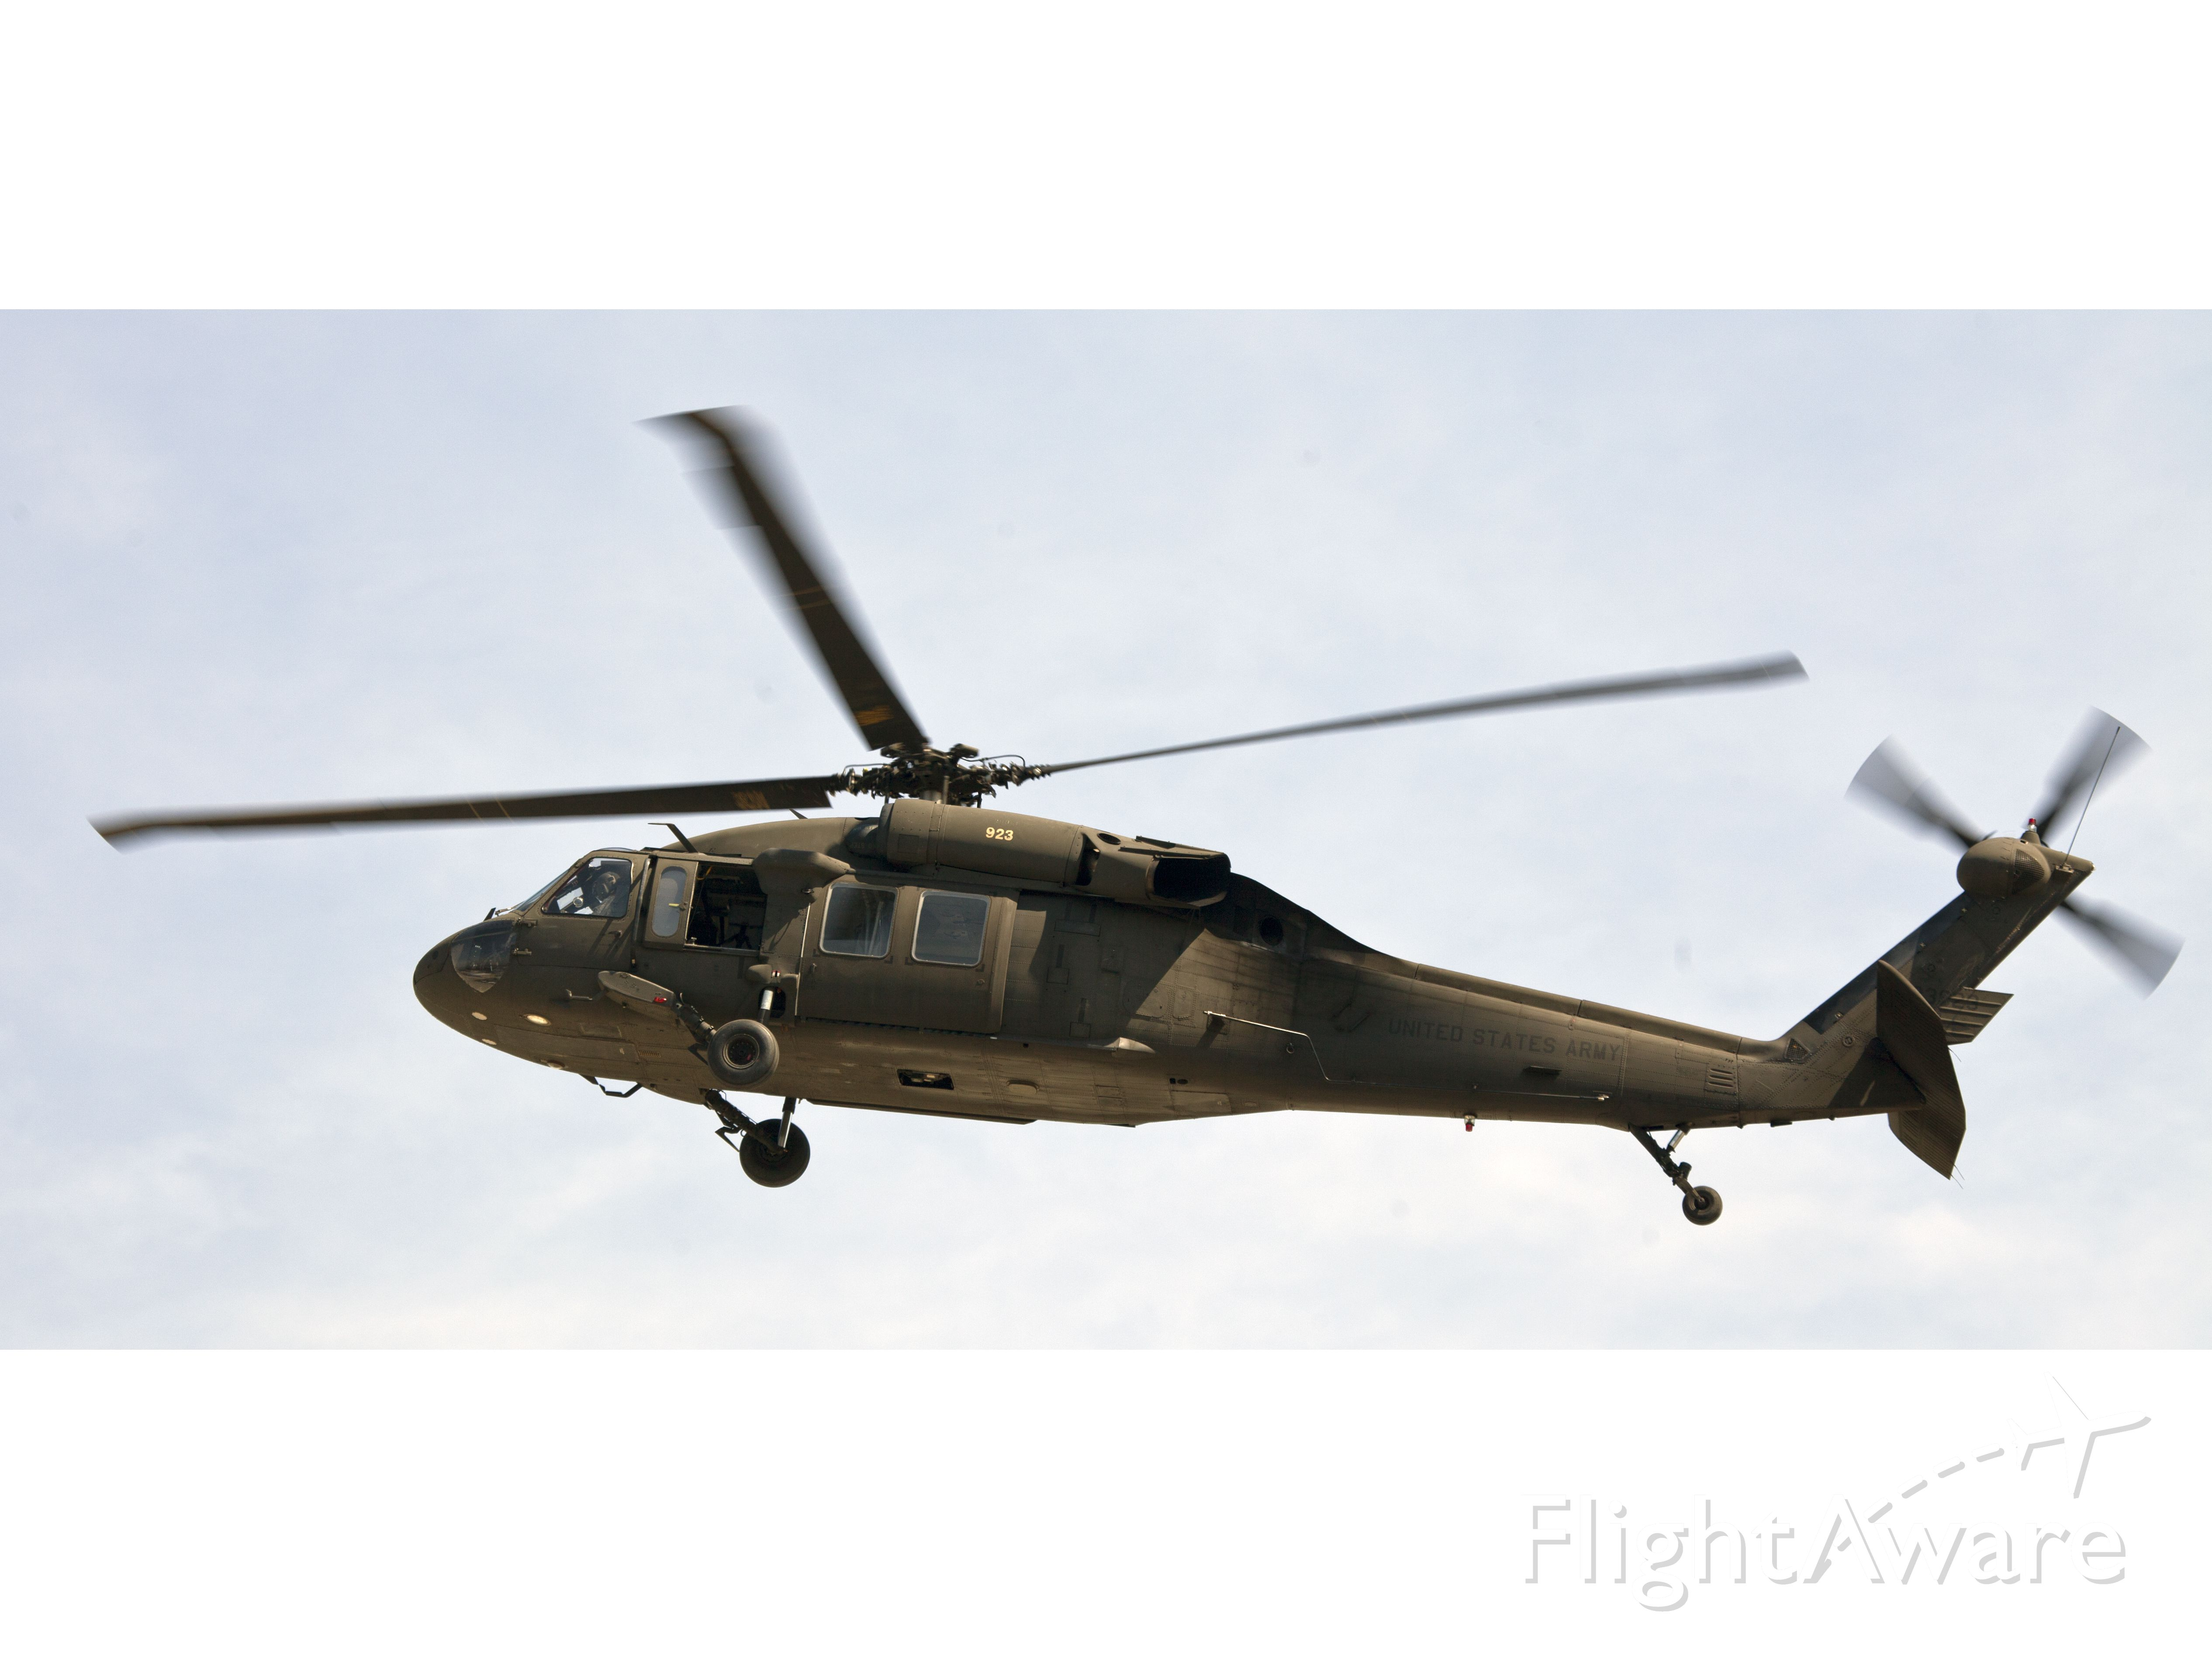 Cessna Commuter (N923) - No type or location information will be provided for US military helicopters.